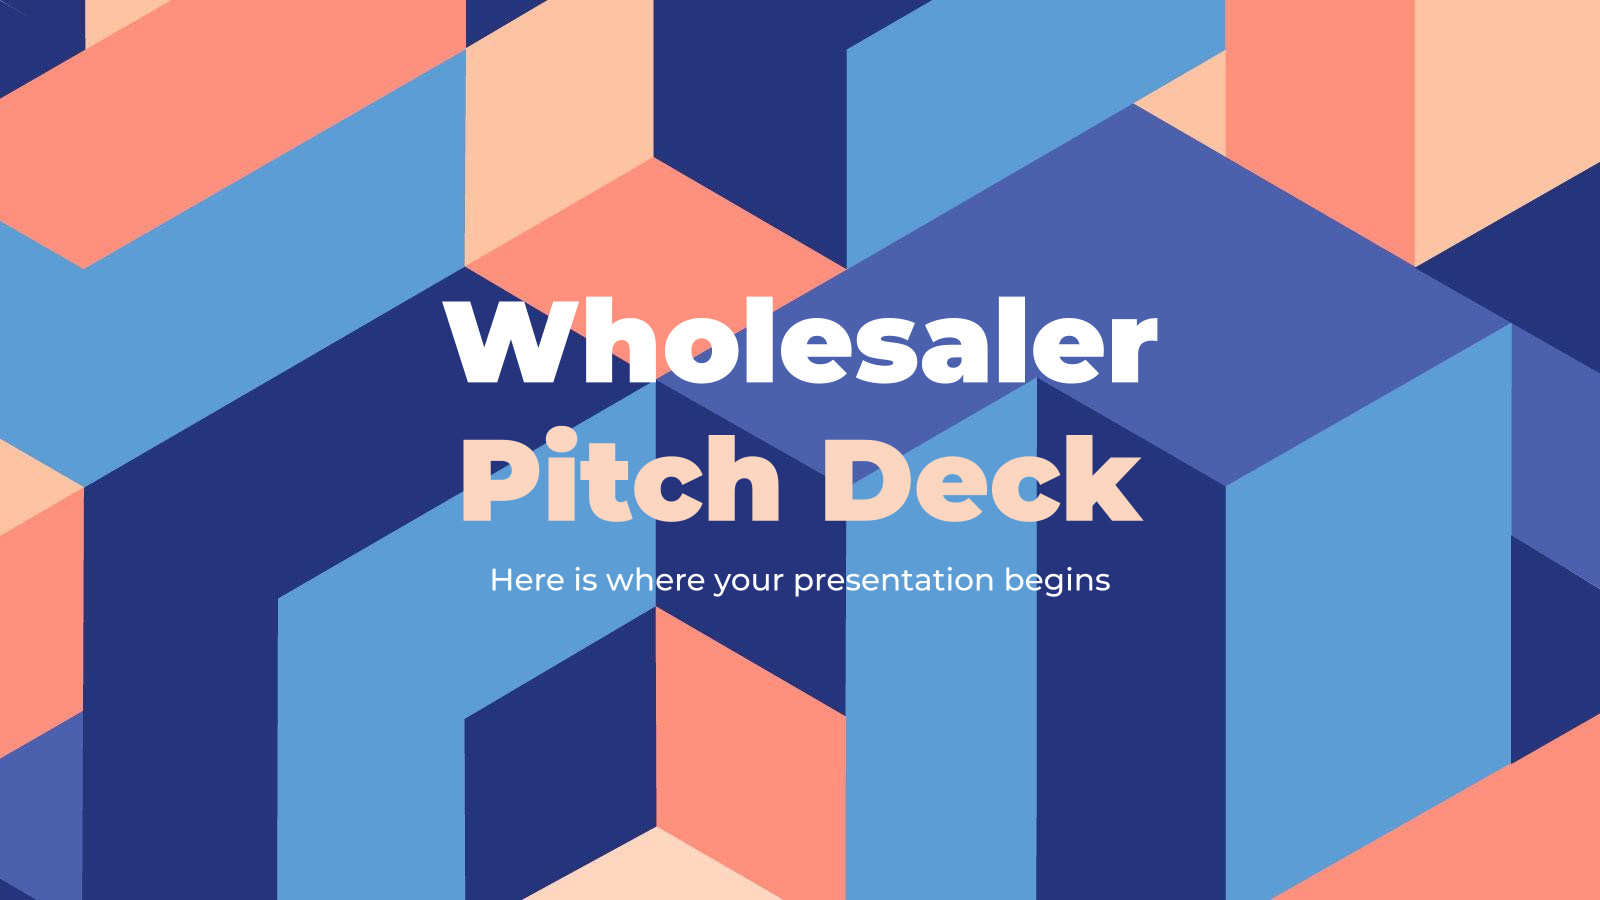 Wholesaler Pitch Deck presentation template